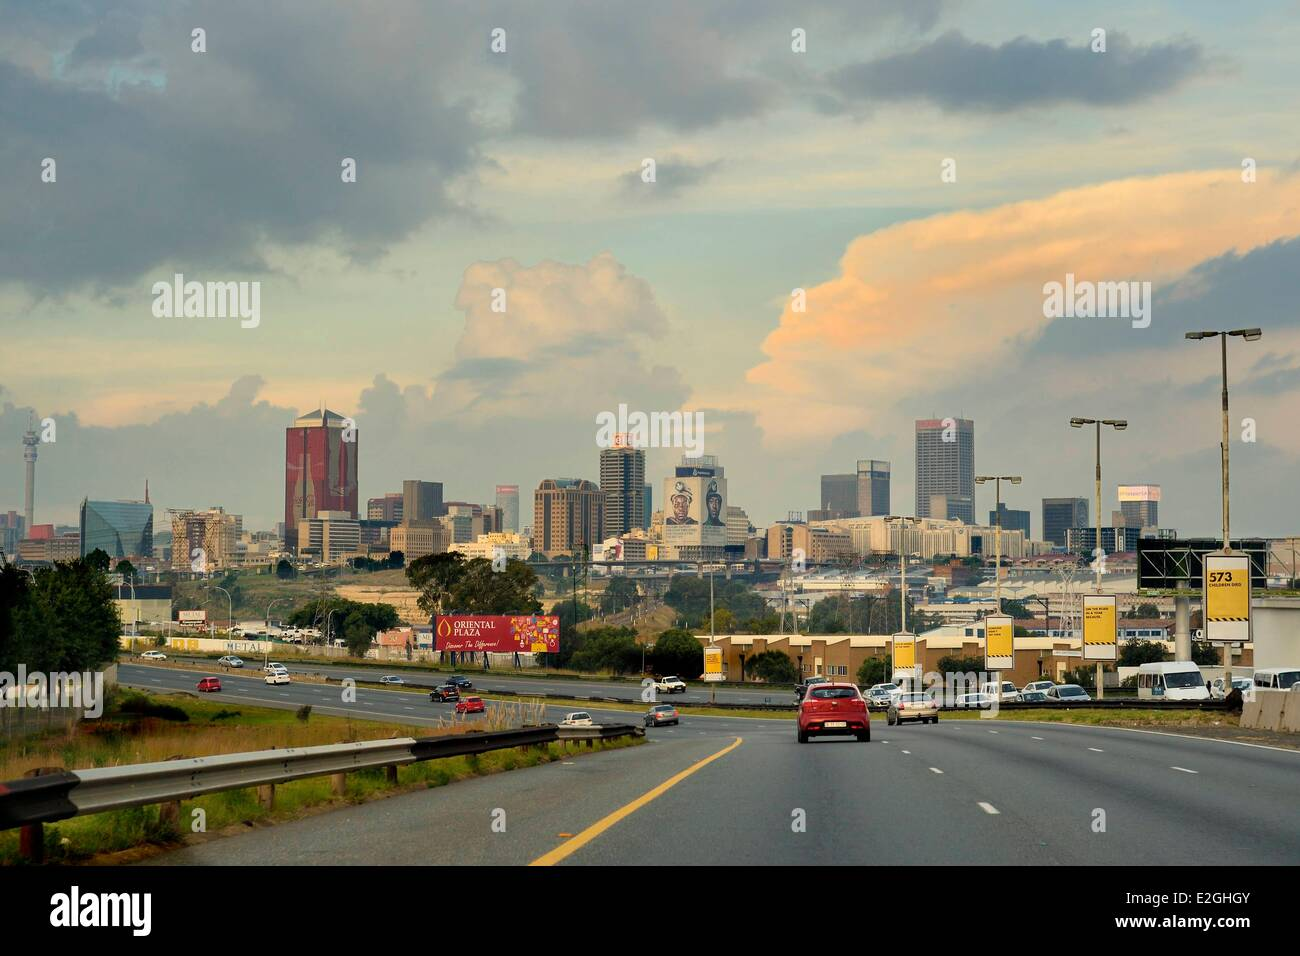 South Africa Gauteng province Johannesburg CBD (Central Business District) skyscrapers - Stock Image